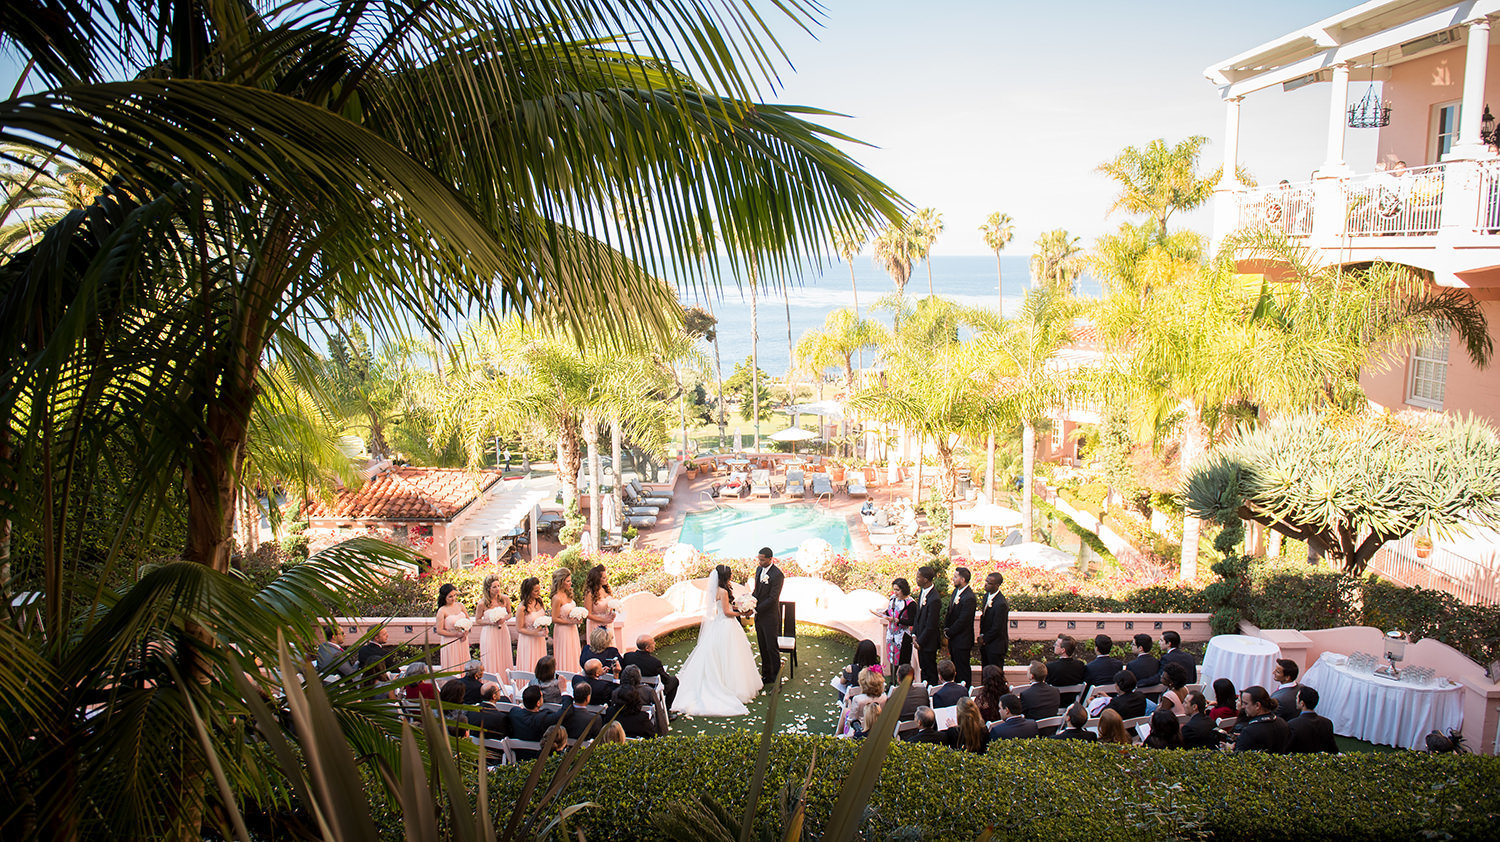 Picture perfect wedding ceremony at La Valencia in La Jolla